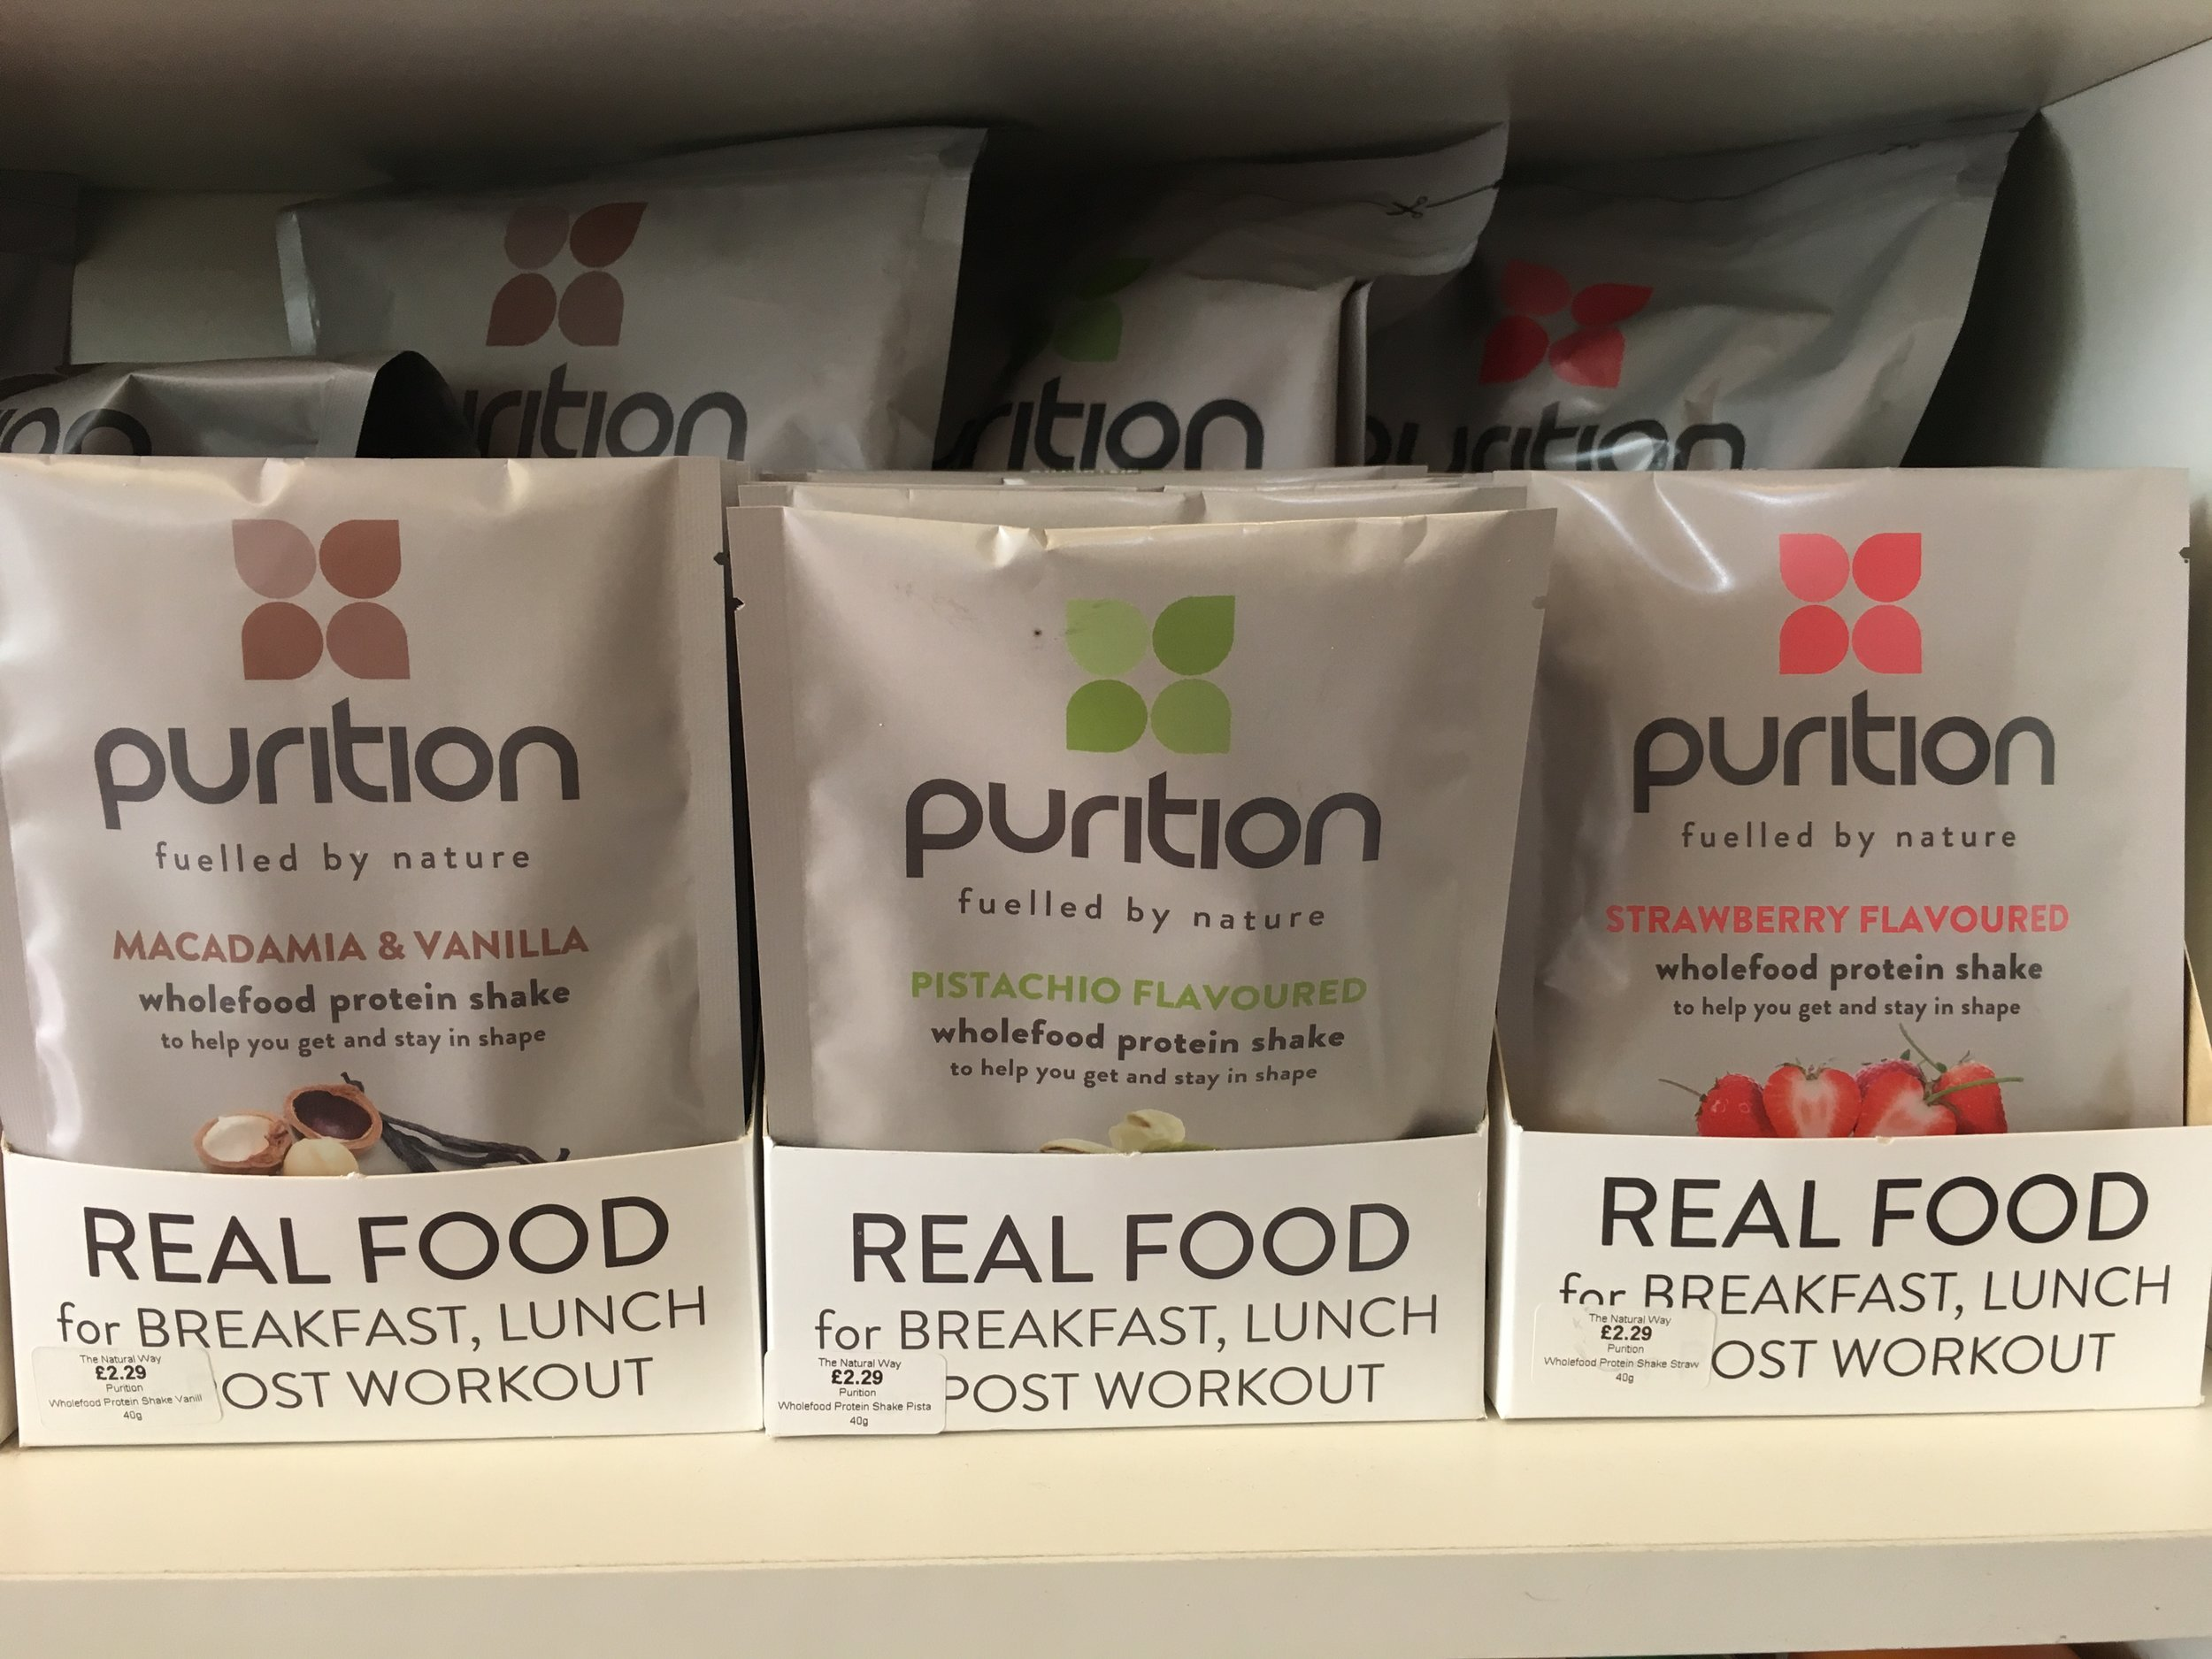 ALL YOUR HEALTH FOOD NEEDS CATERED FOR